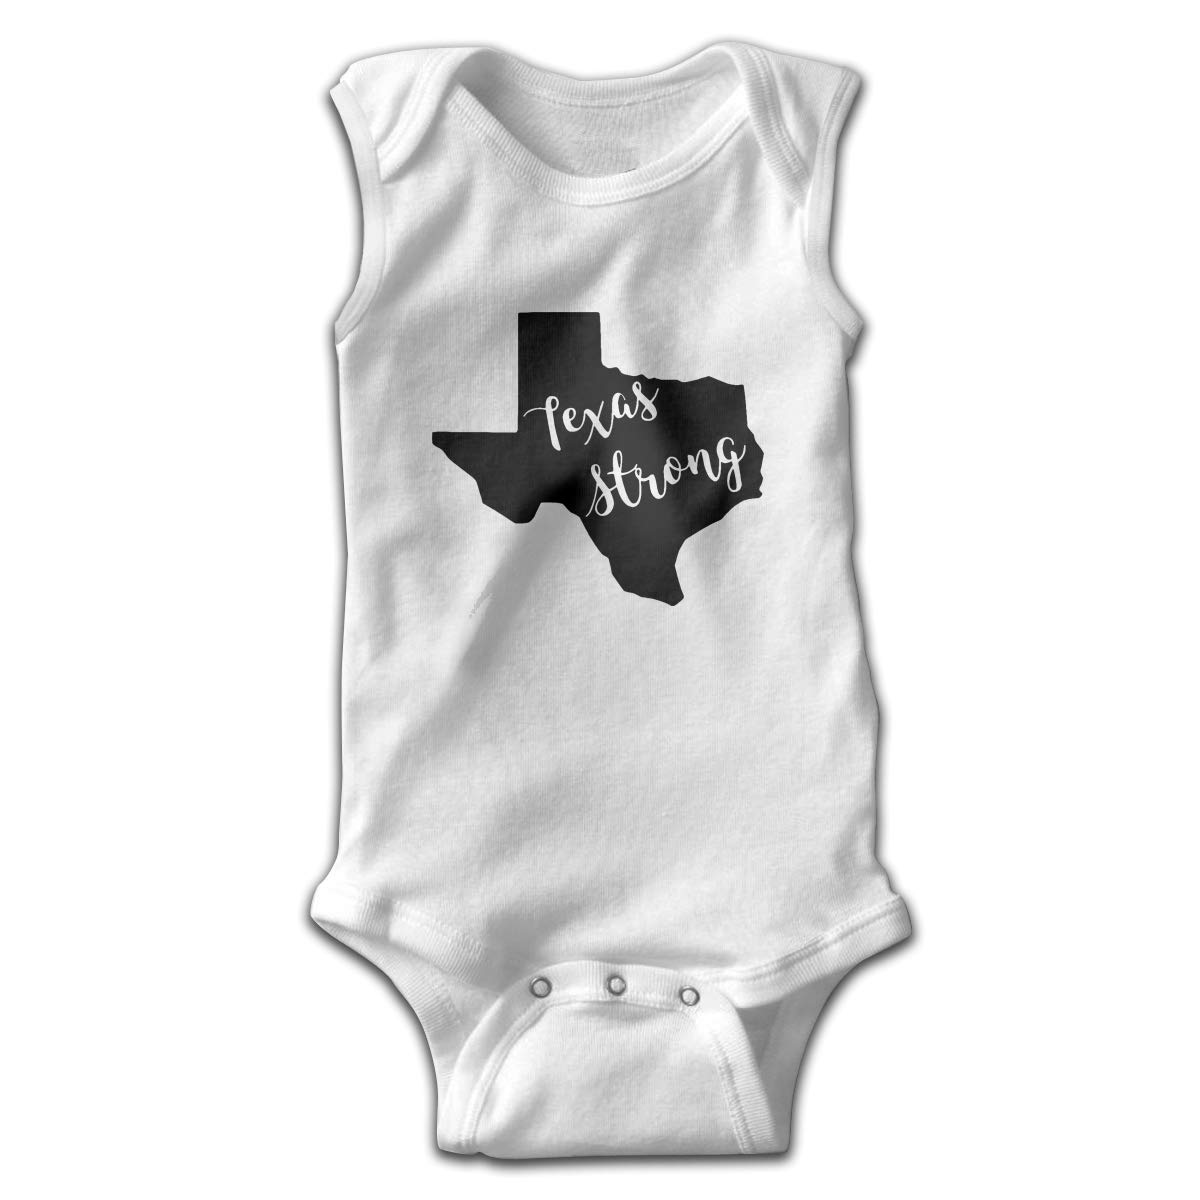 Texas Strong Toddler Baby Clothes Bodysuit Sleeveless Summer Novelty Funny Gift for Baby